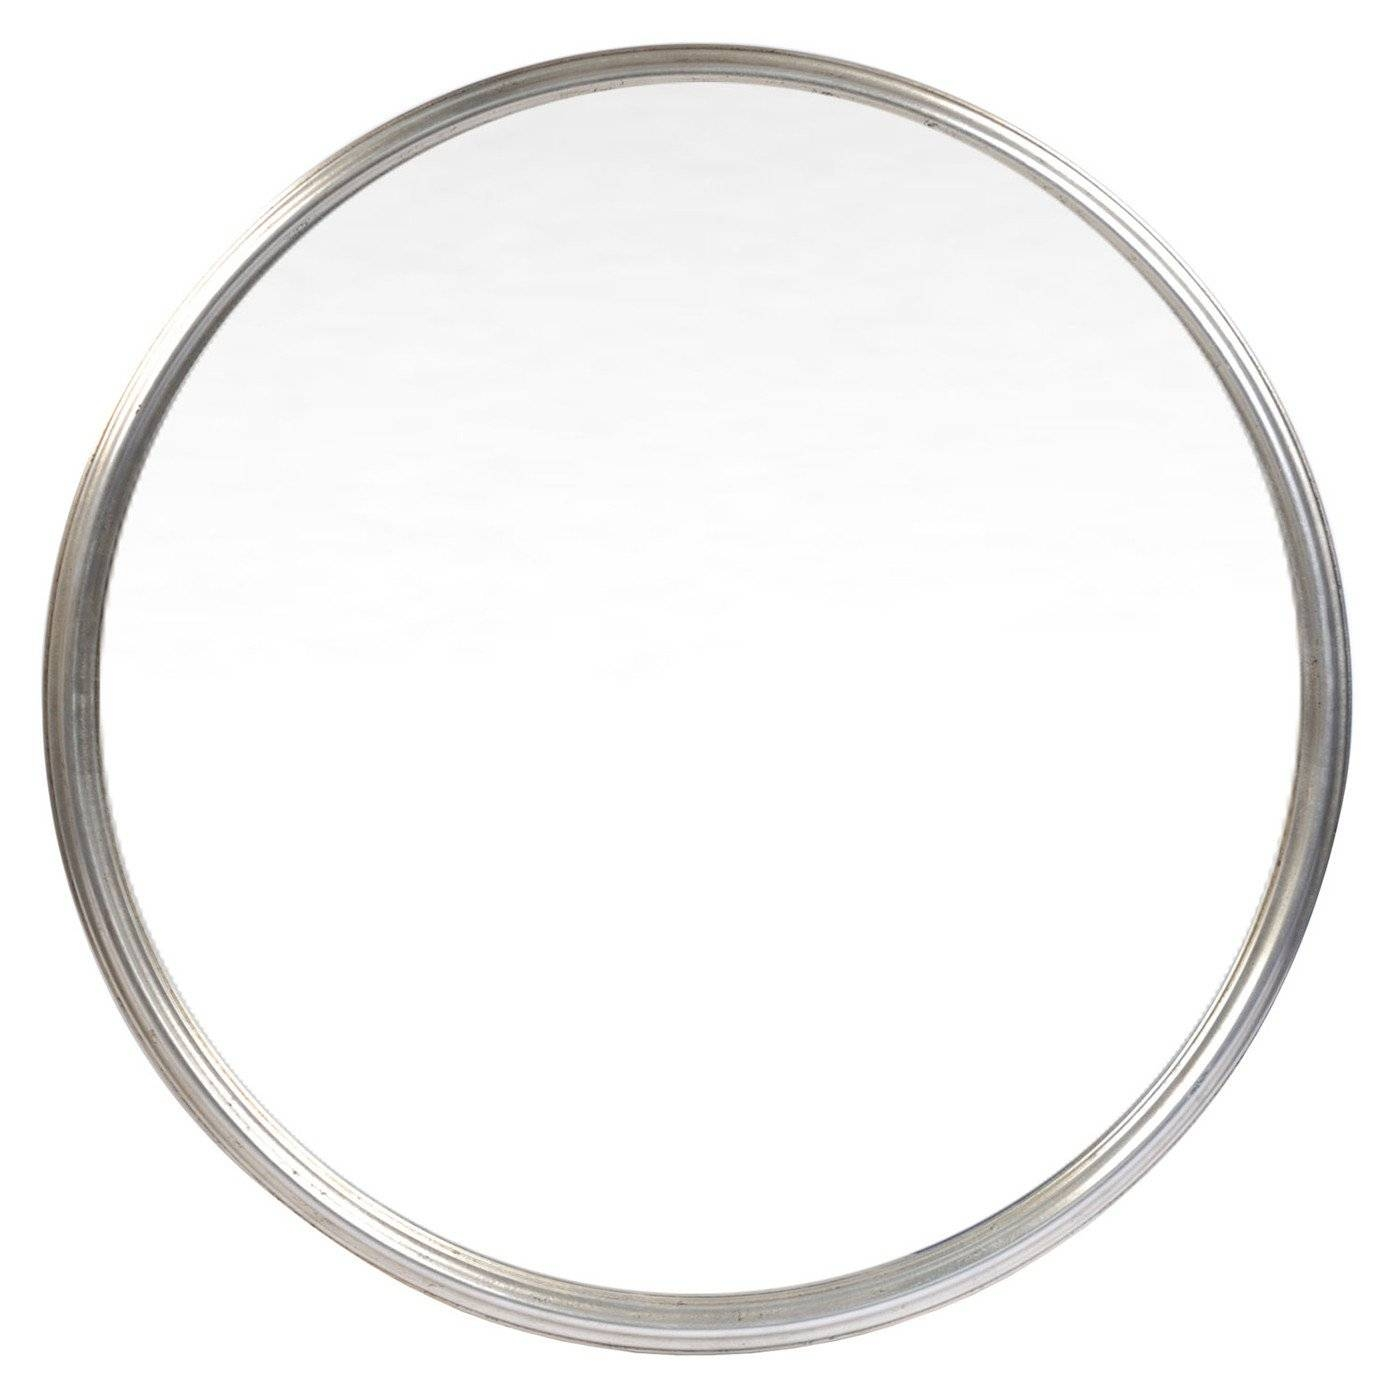 Round Mirrors | Modern Round & Circle Mirrors | Heal's throughout Contemporary Round Mirrors (Image 22 of 25)